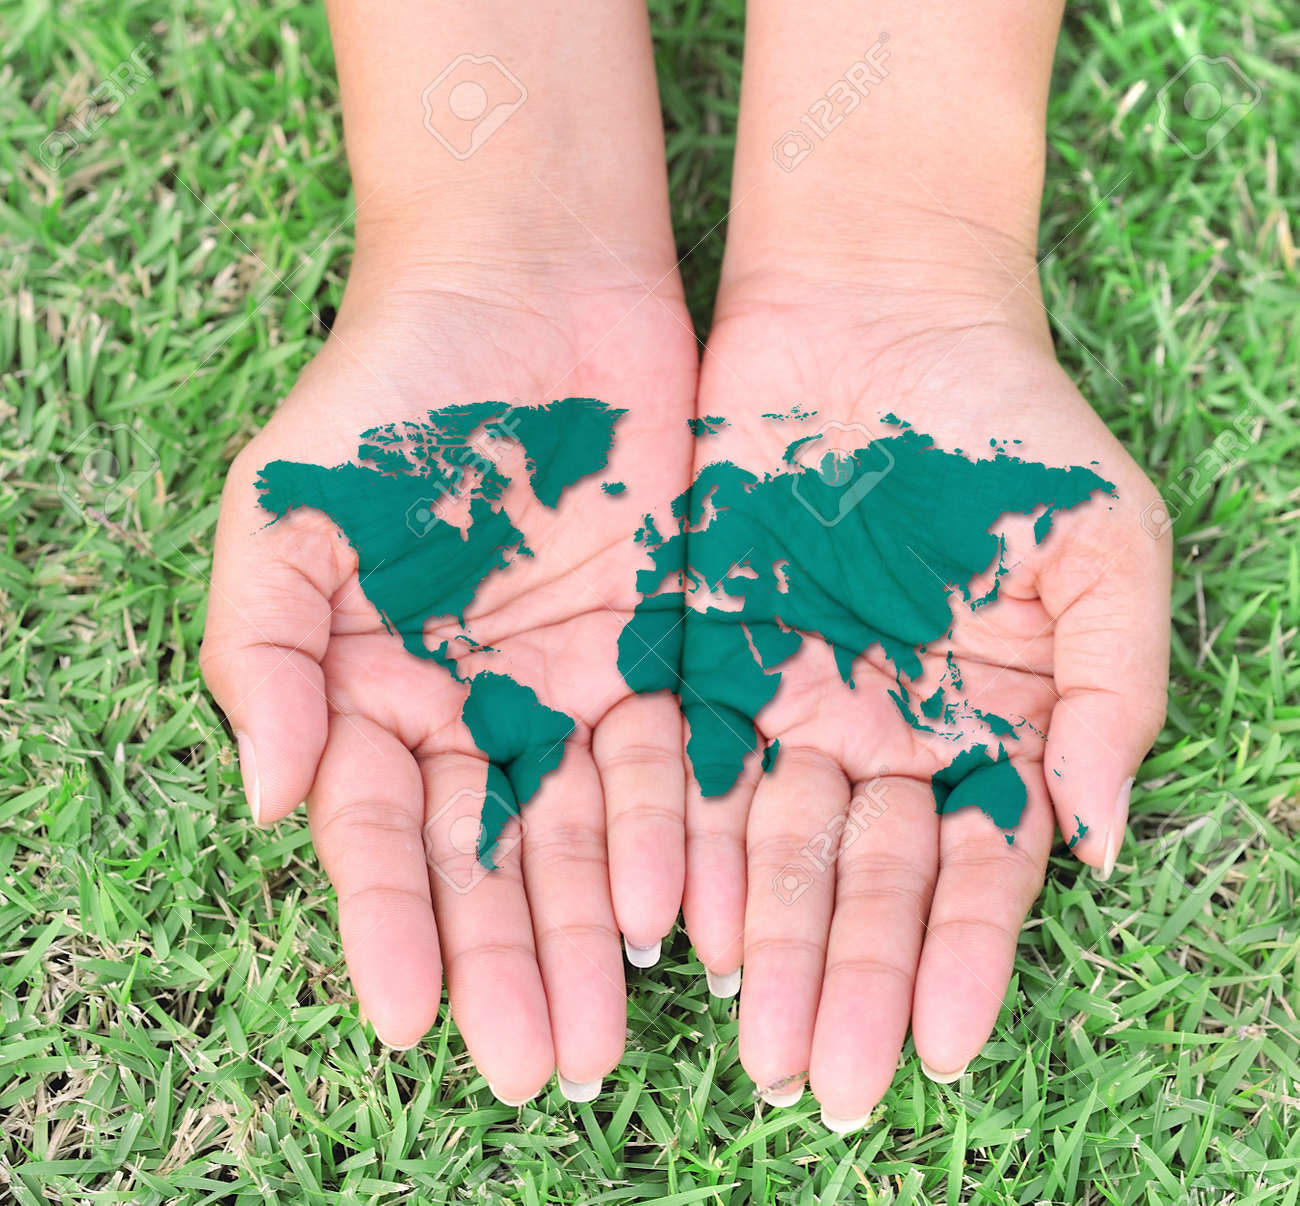 World Map On Hands.The Open Hands Of World Map Stock Photo Picture And Royalty Free